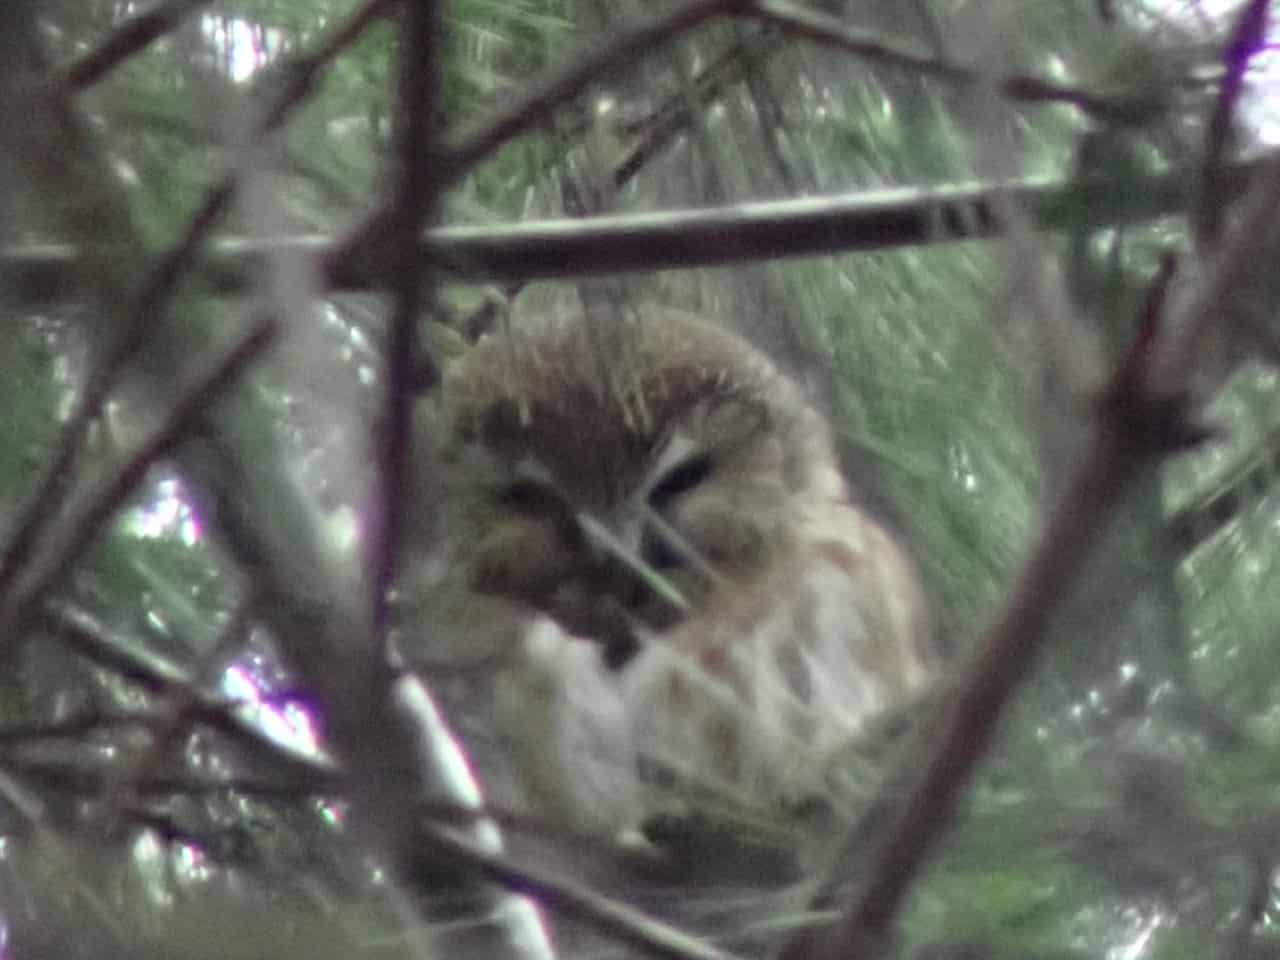 Northern Saw-whet Owl - Photo Blake Mathys